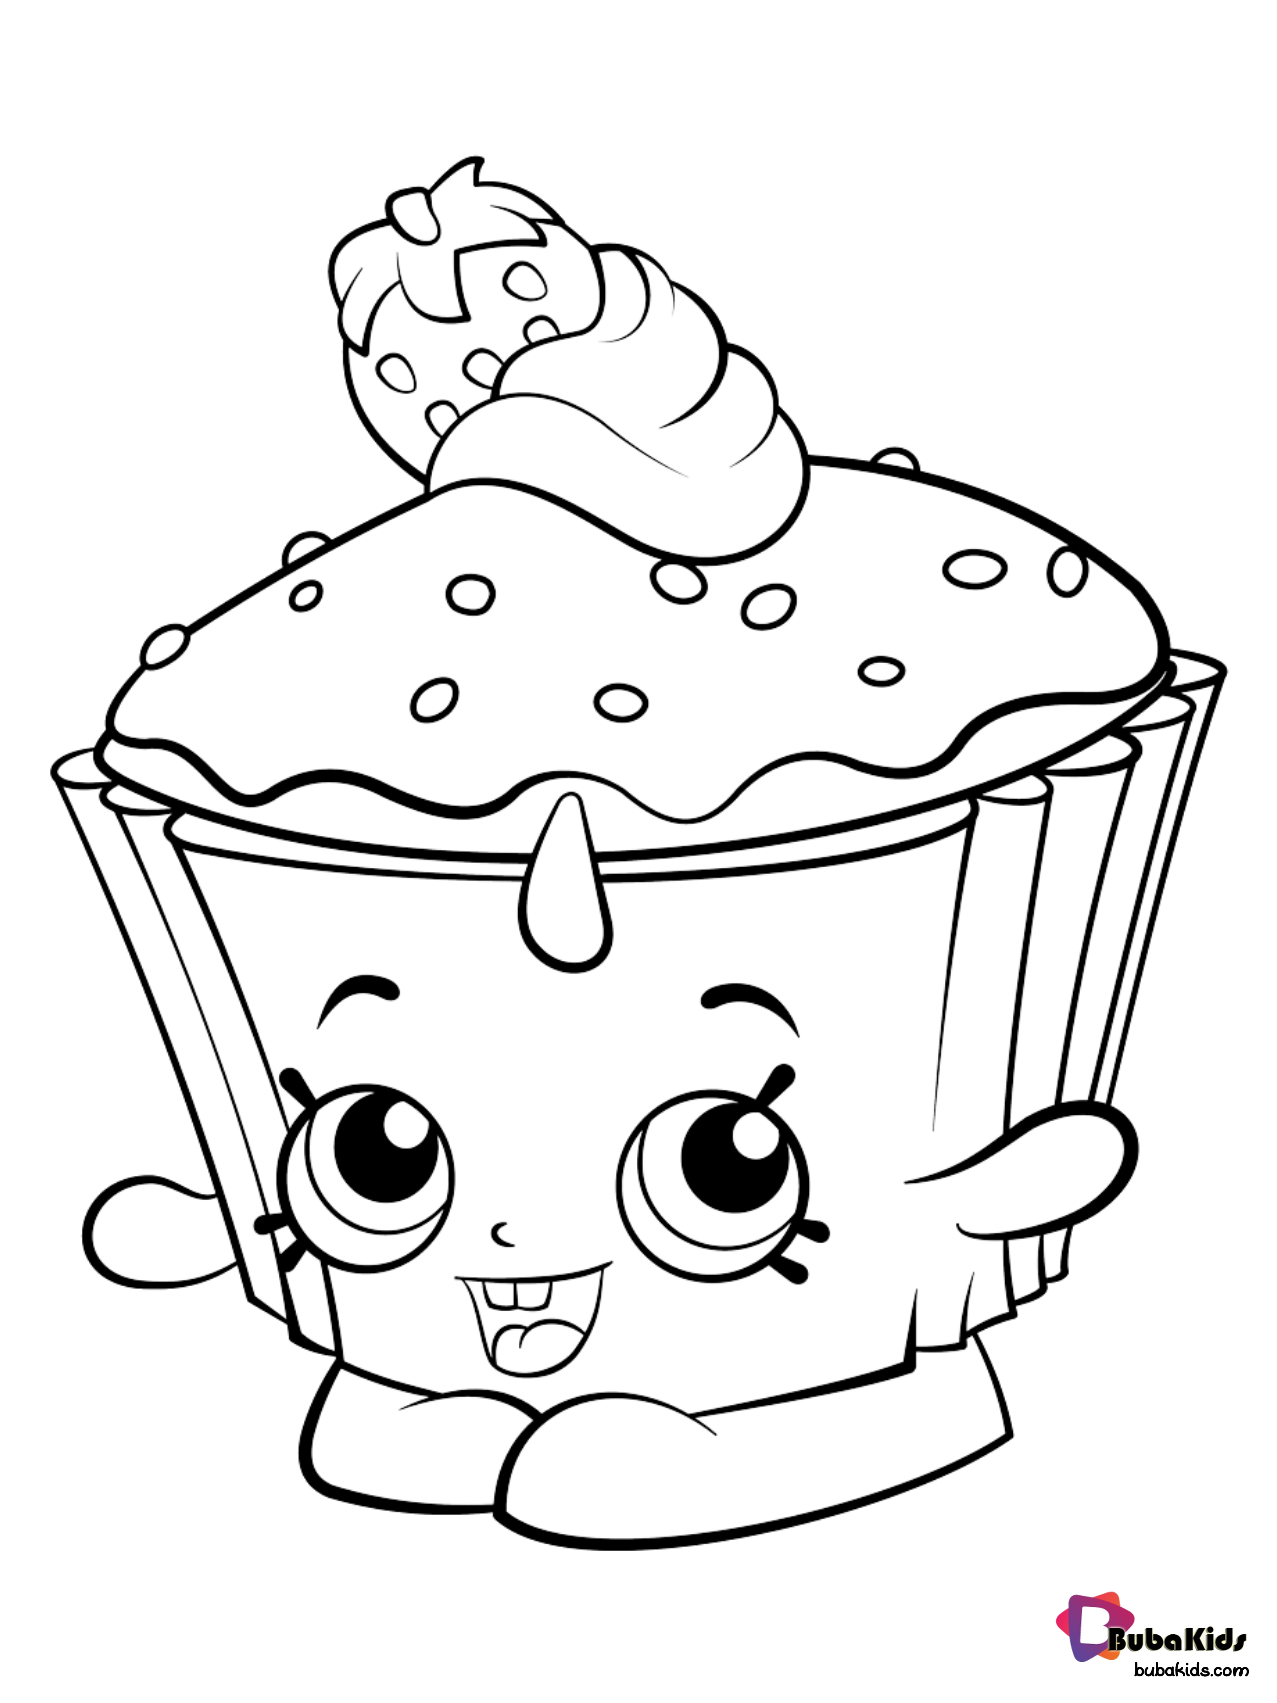 Free Download Strawberry Cup Cake Coloring Page For Preschoolers Collection Of Cartoon C Shopkin Coloring Pages Cartoon Coloring Pages Cupcake Coloring Pages